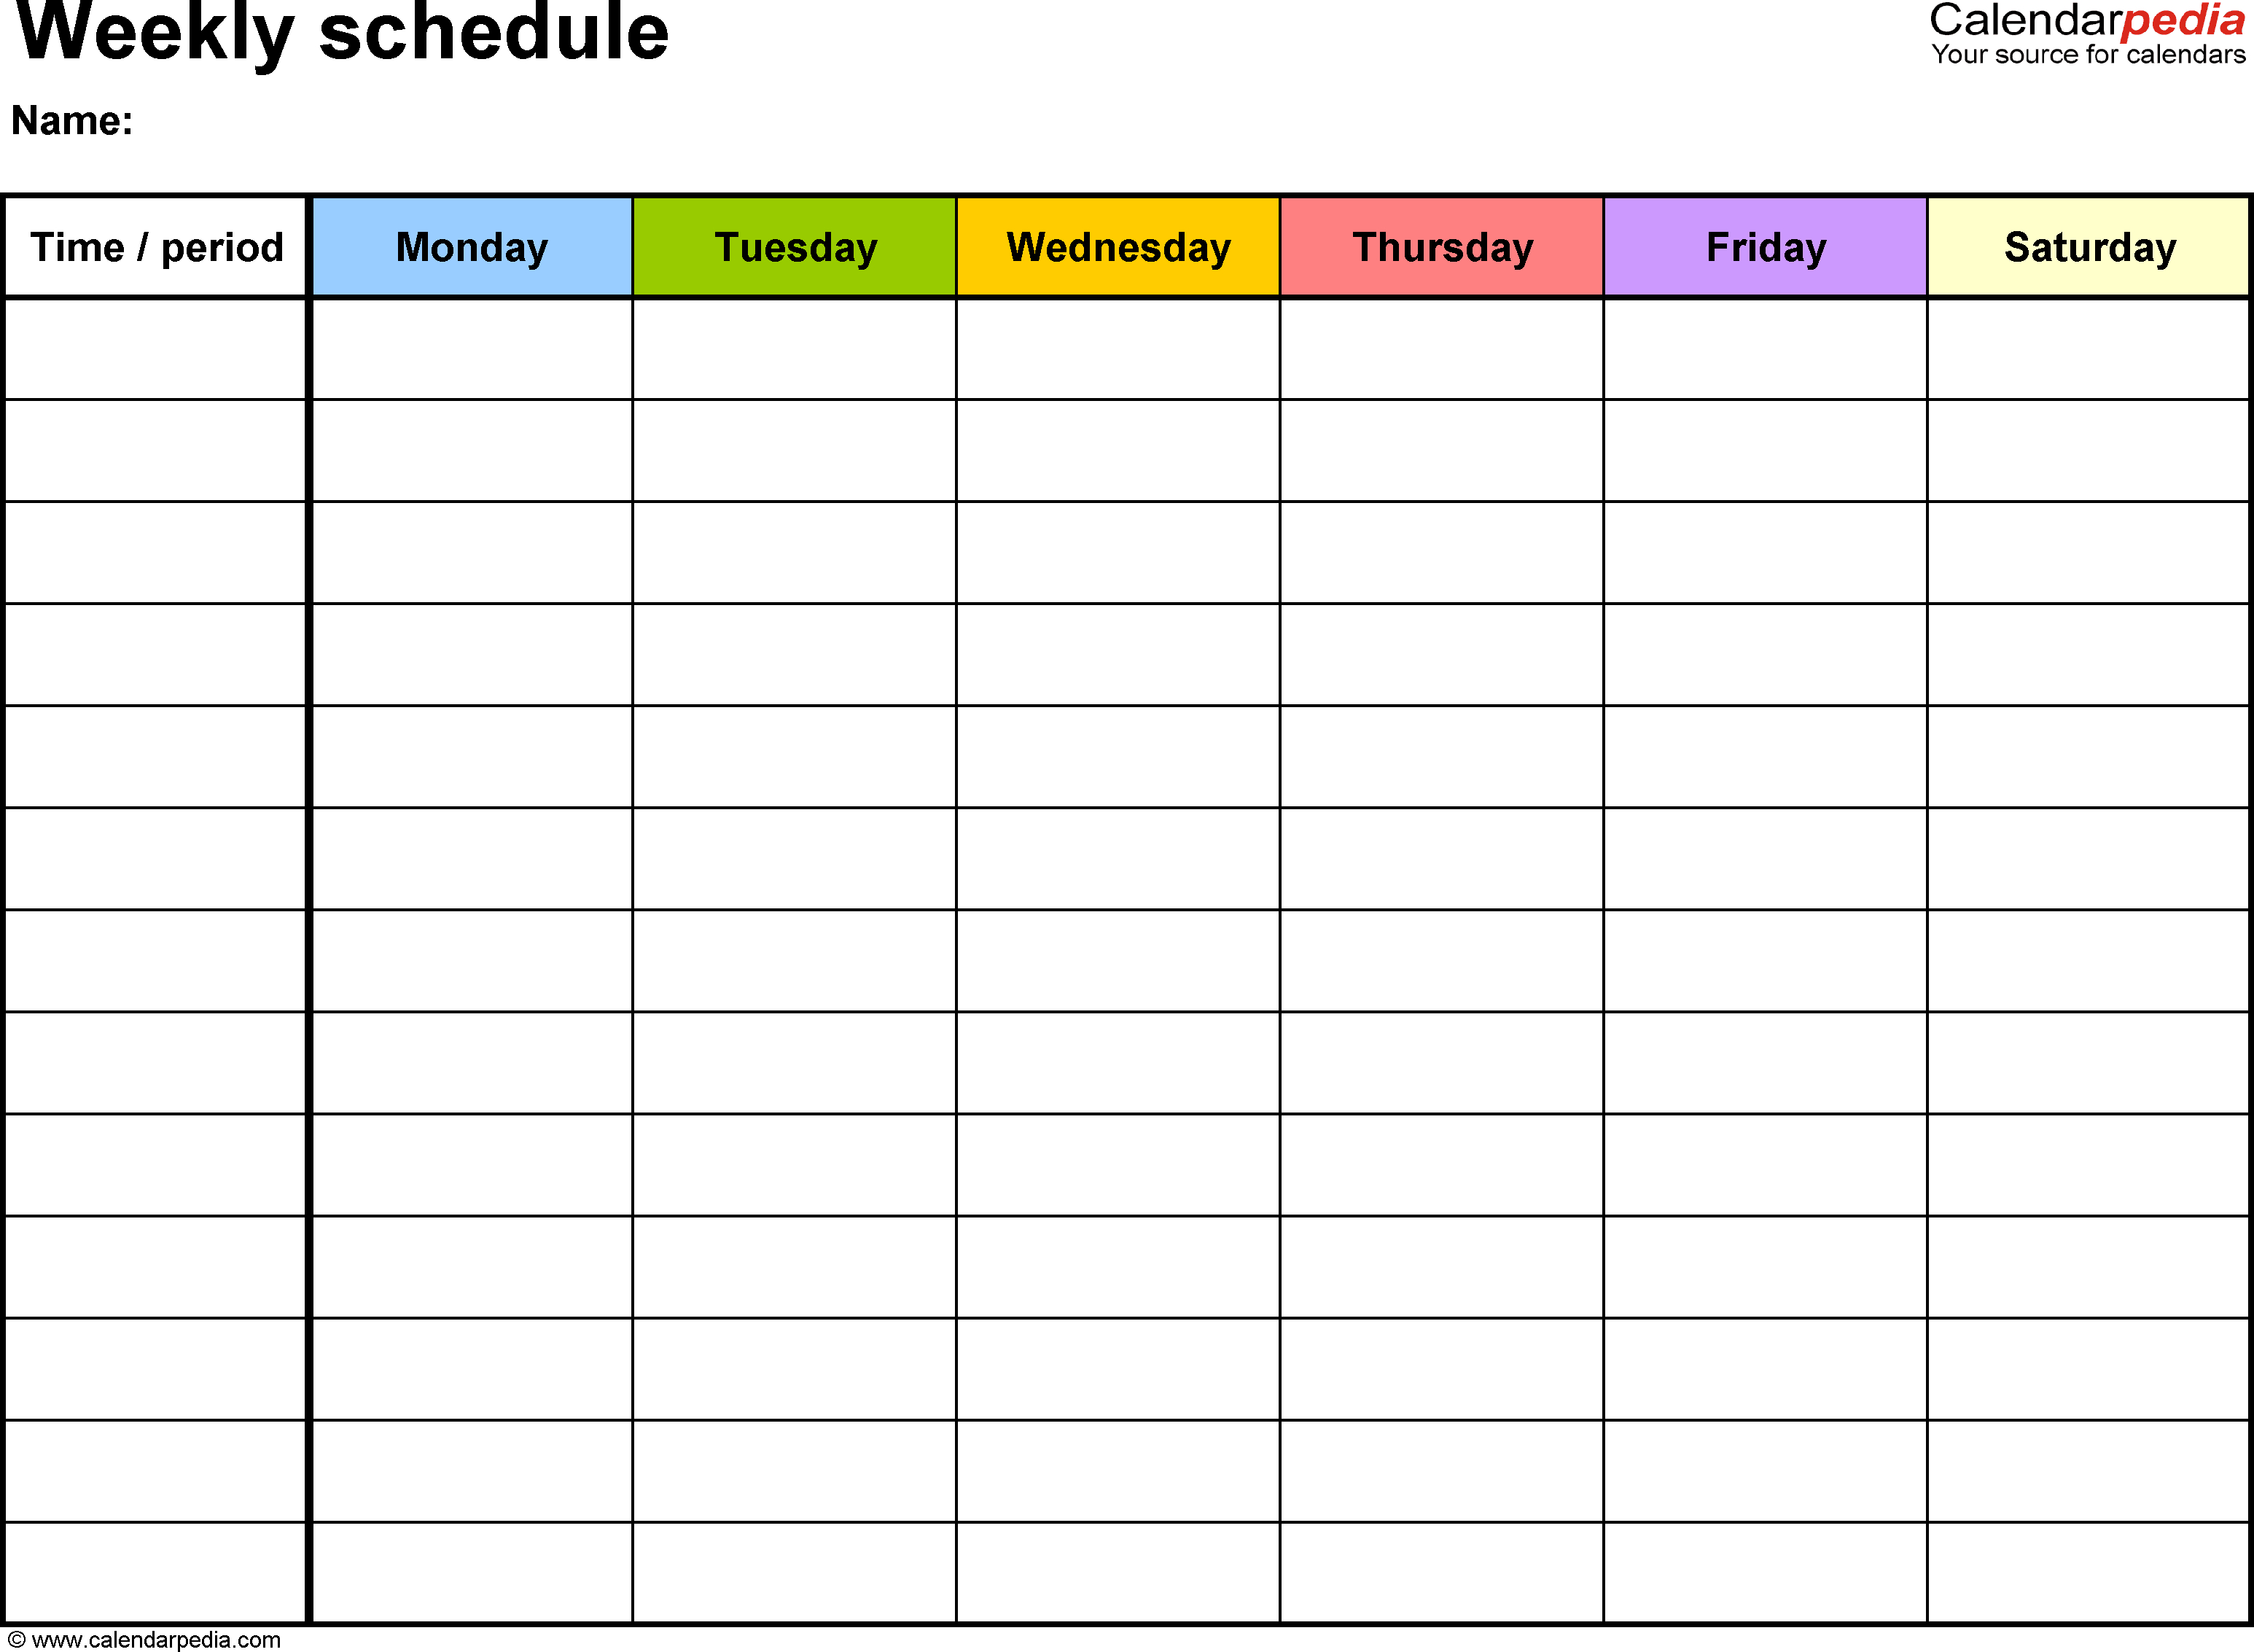 Free Weekly Schedule Templates For Word - 18 Templates with regard to Print Off A Blank Calendar For